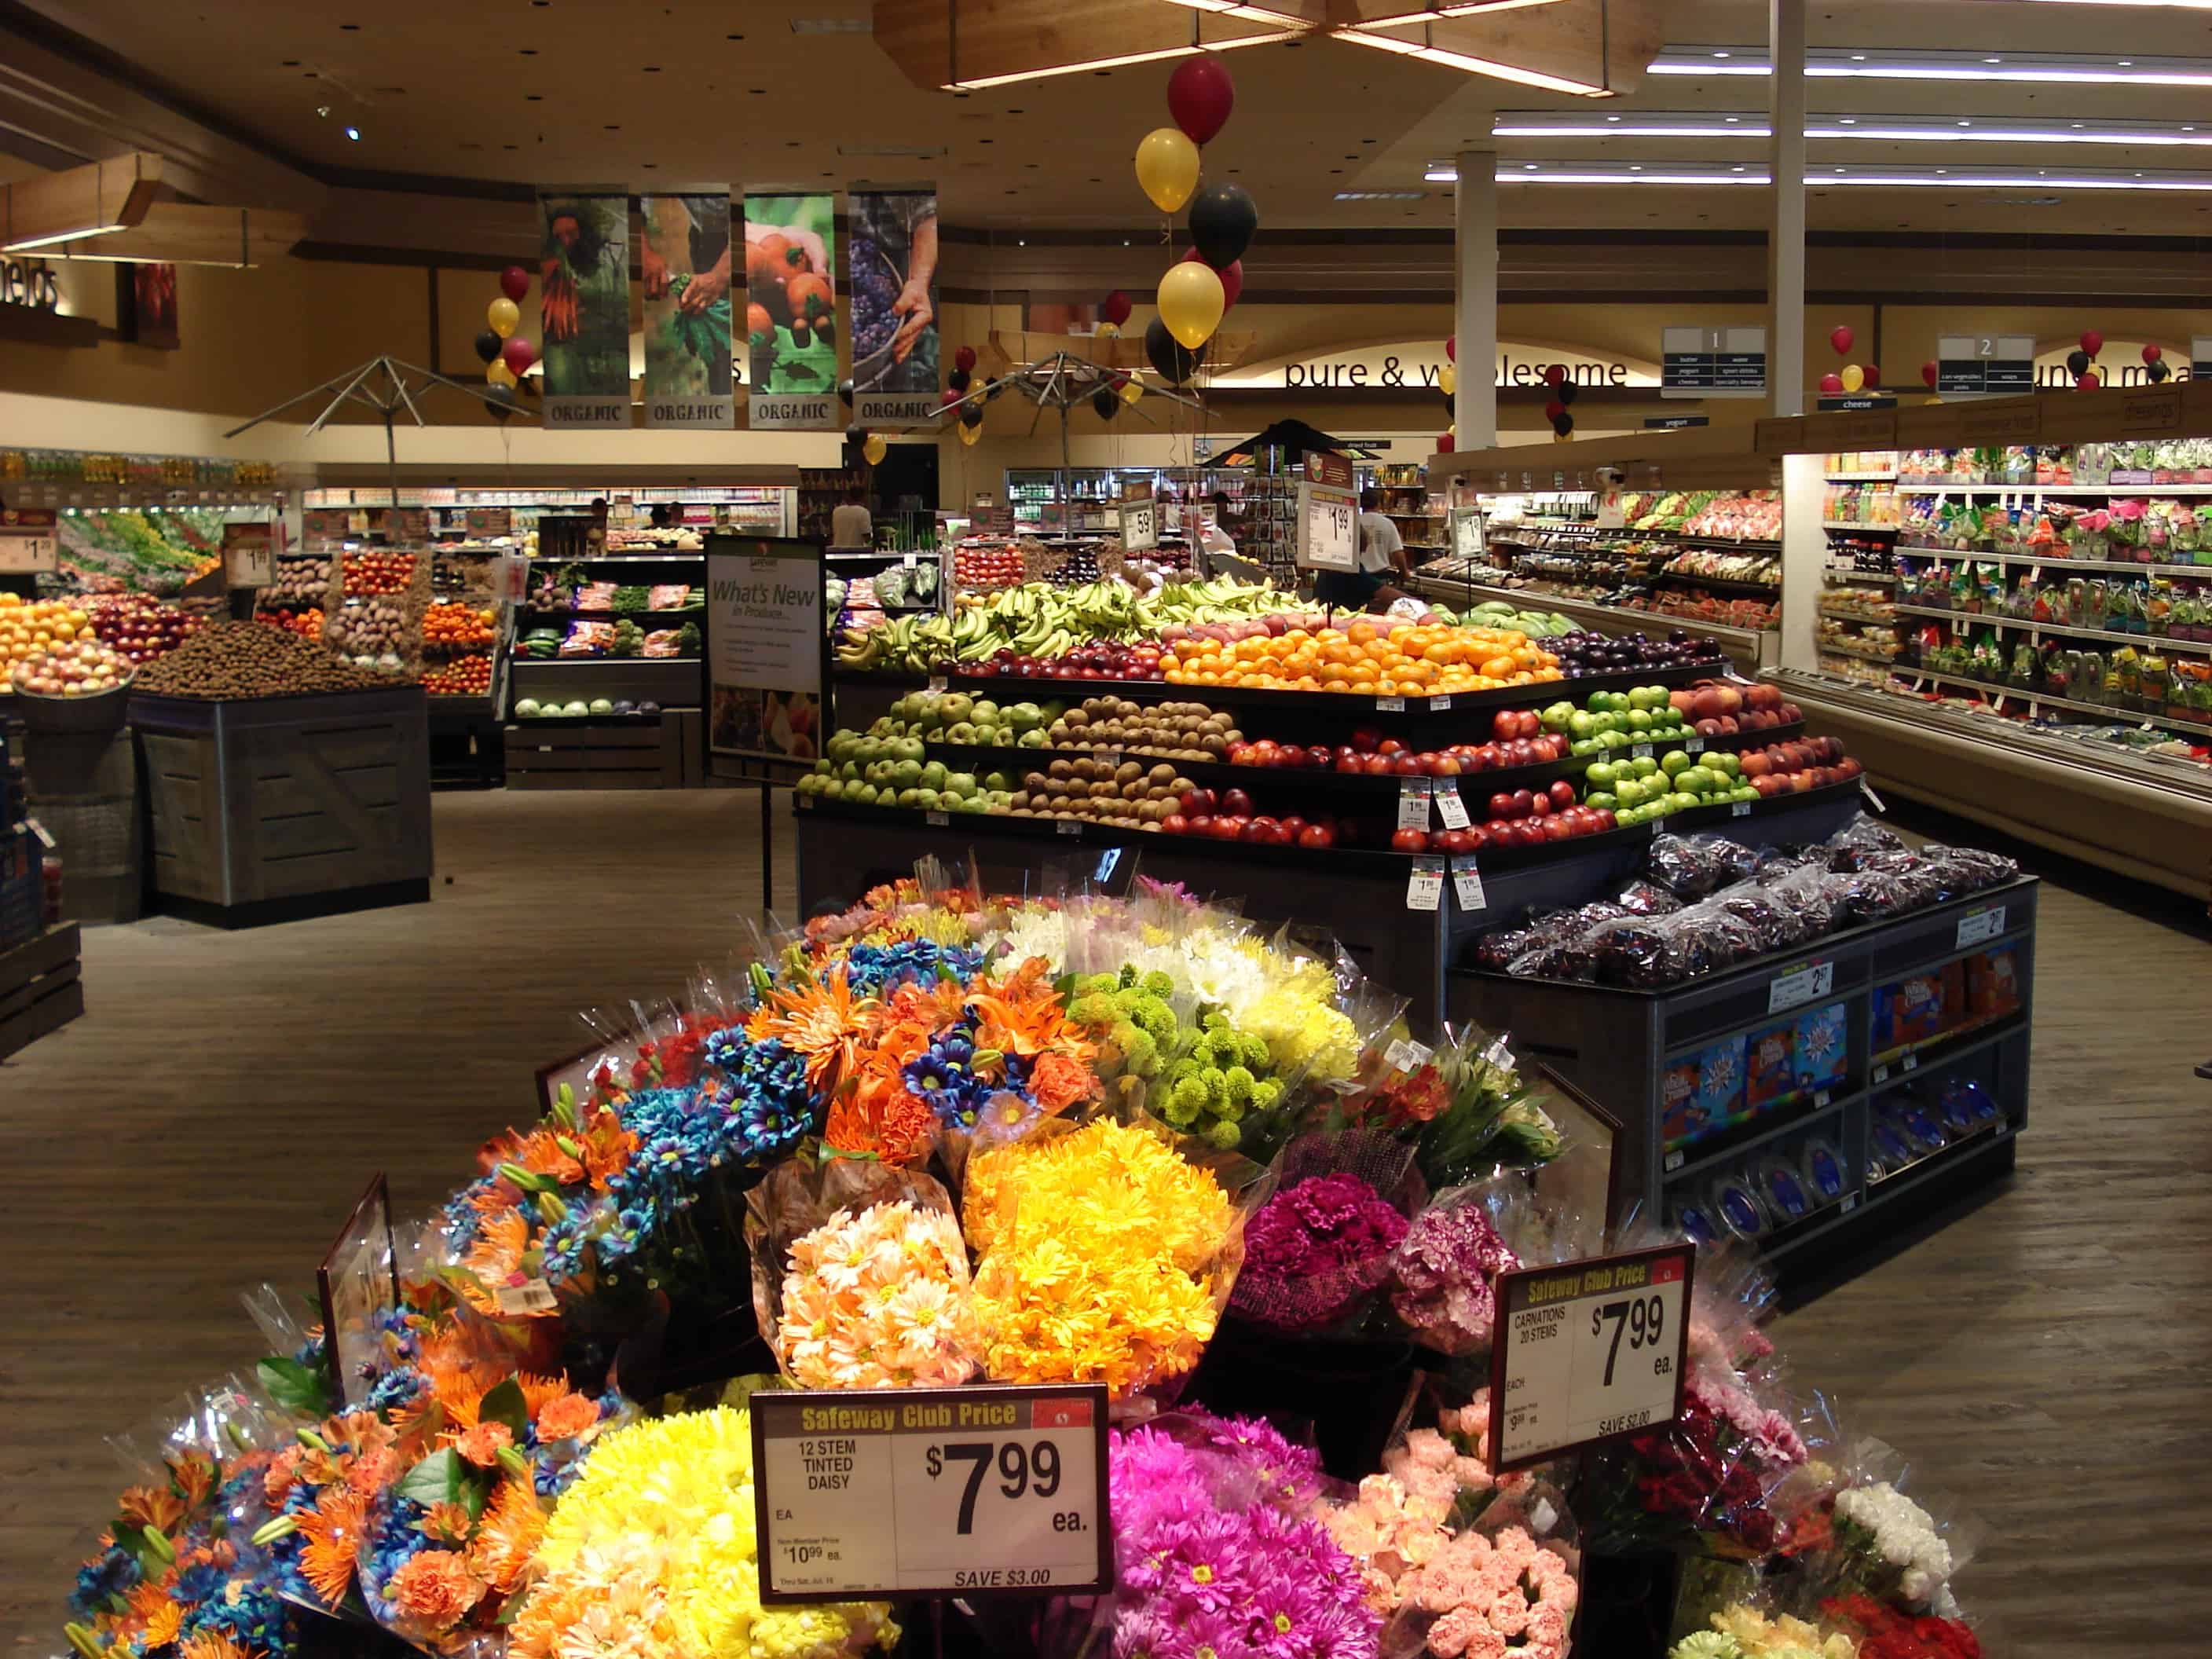 How To Get The Best Deals at Safeway - Mile High on the Cheap